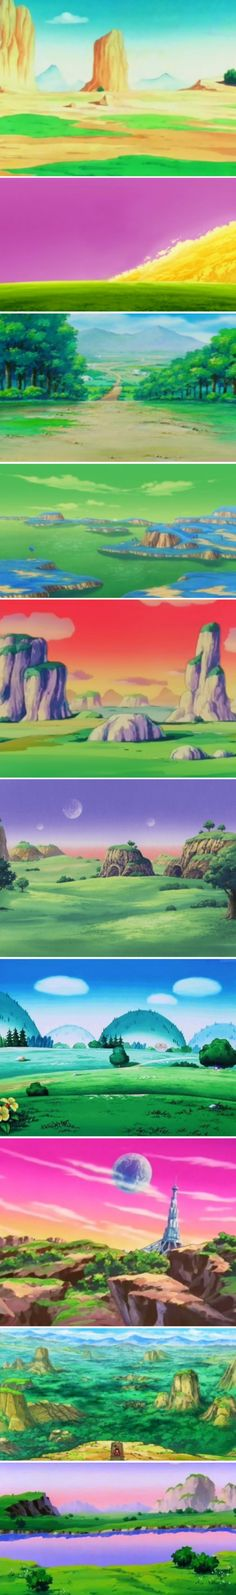 All Dragon ball s environment